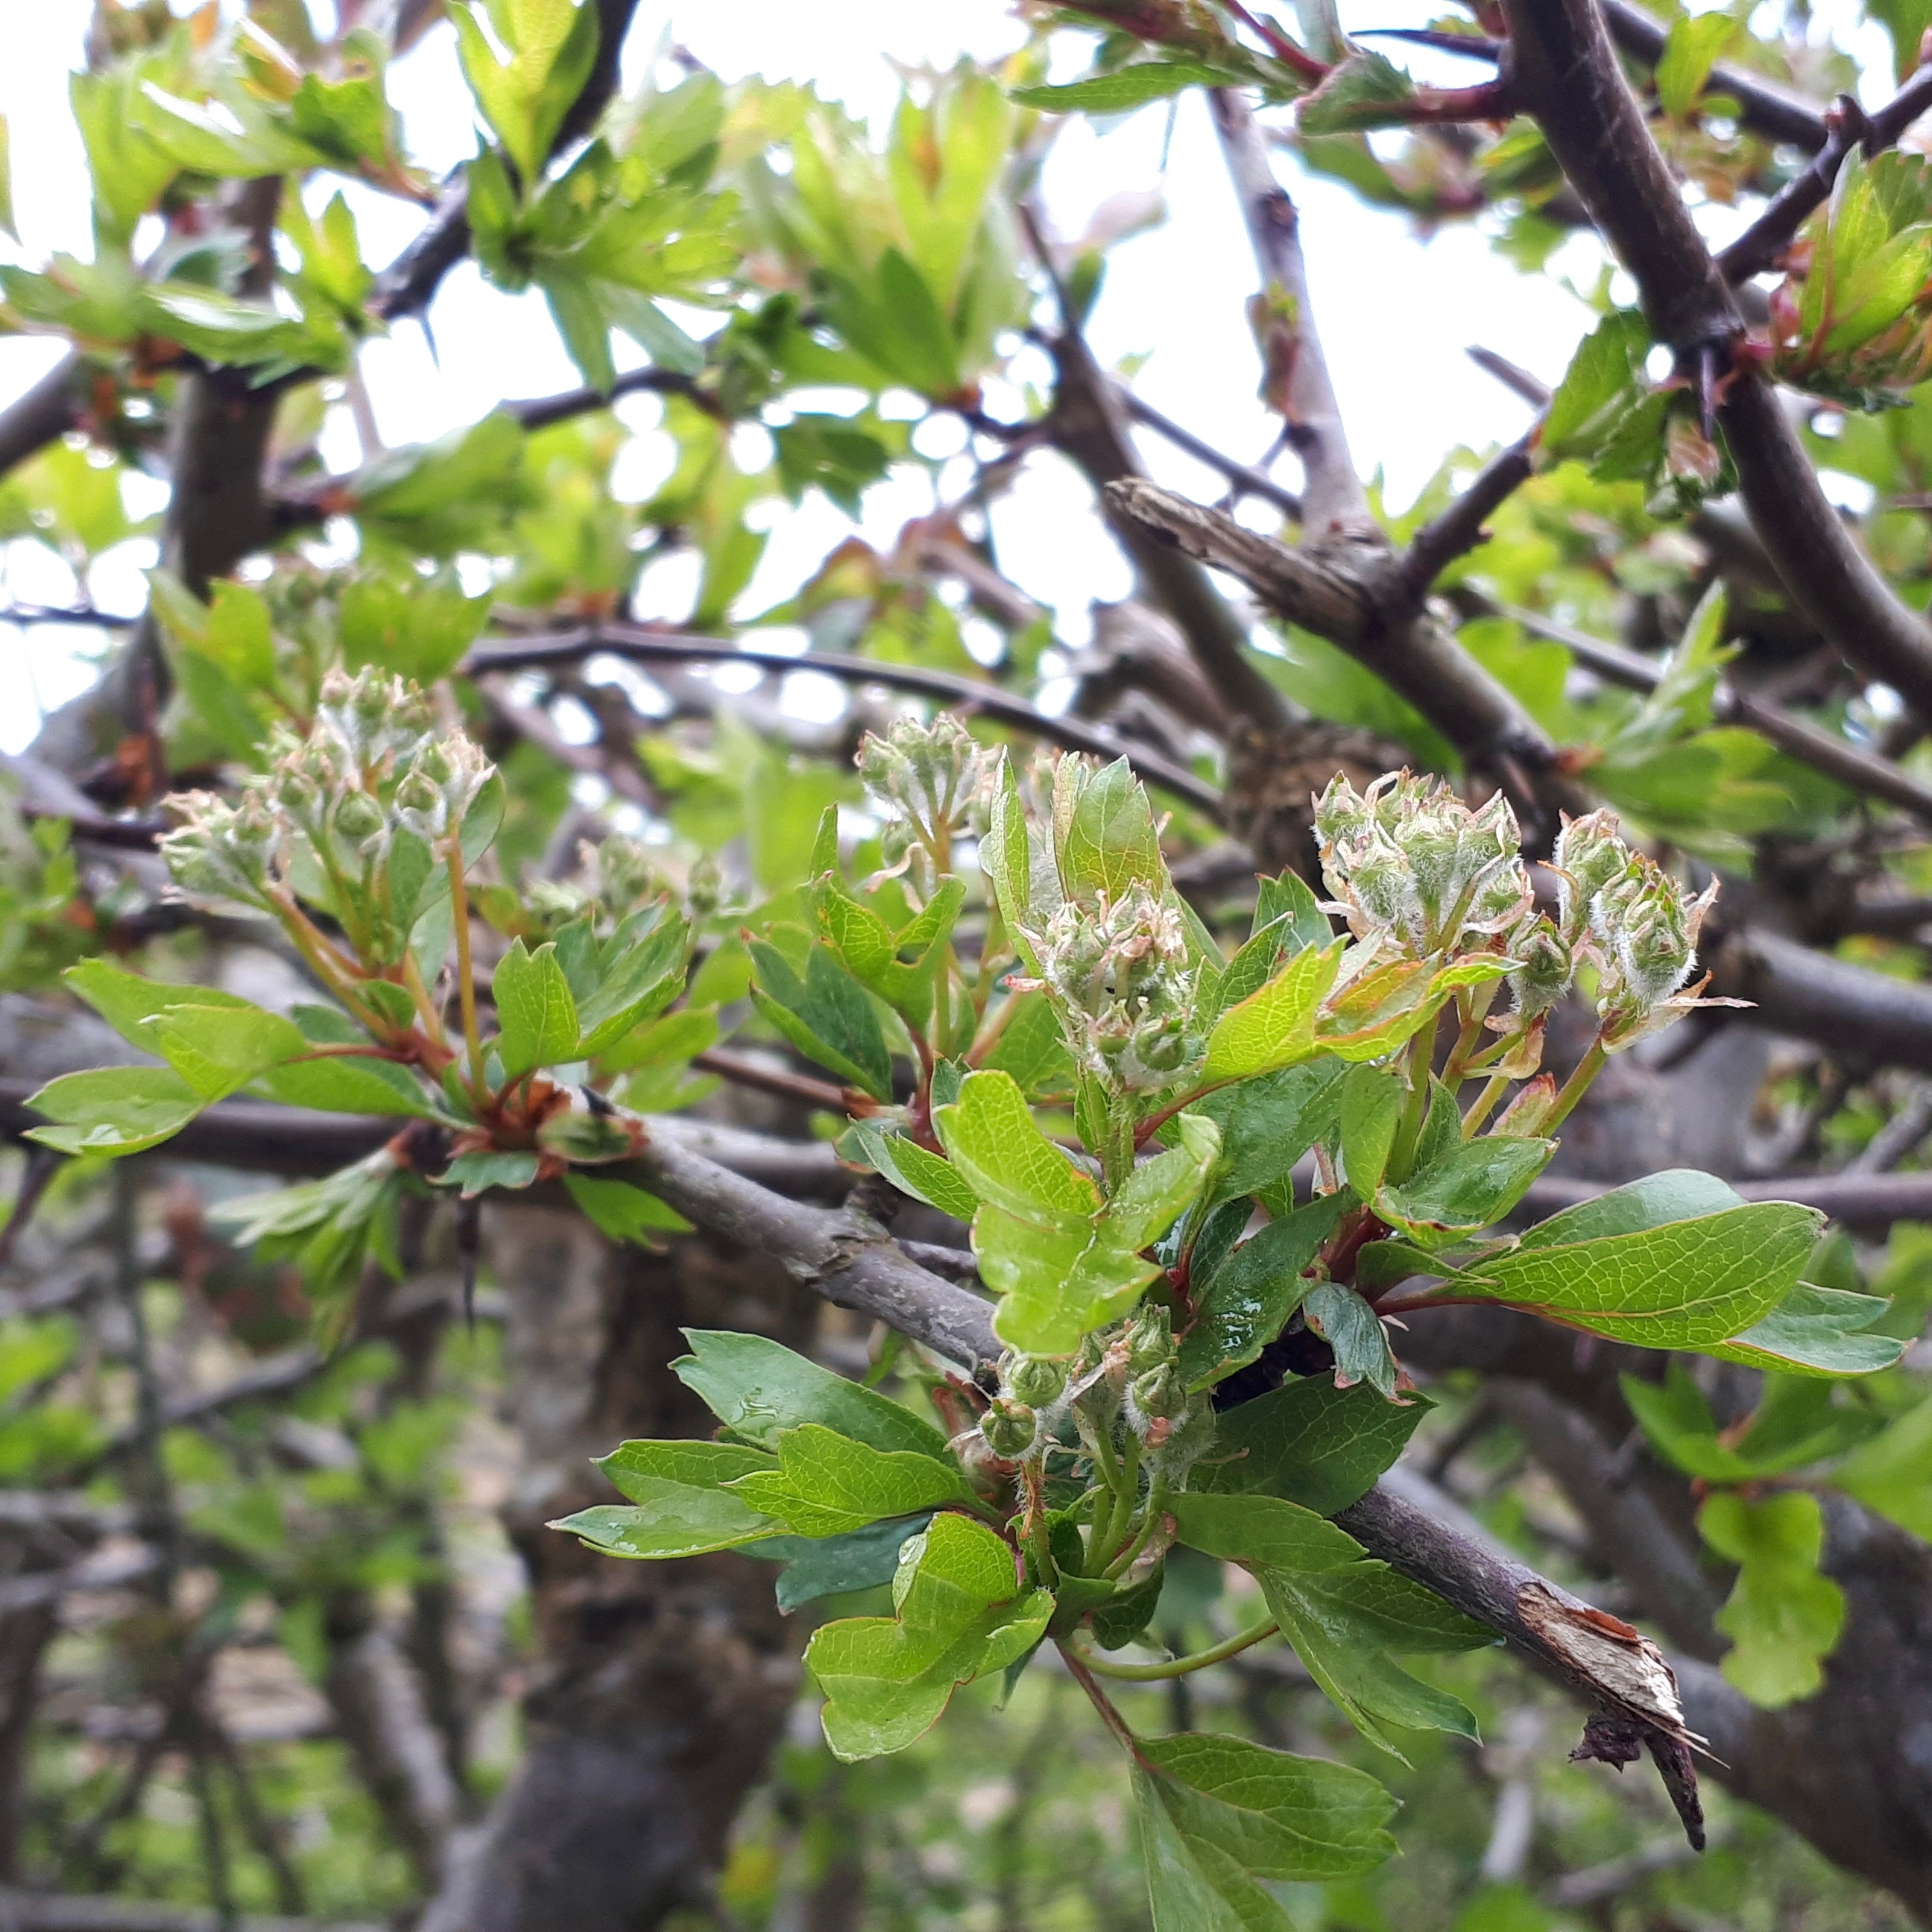 Hawthorn flowers forming by Alice Draws the Line